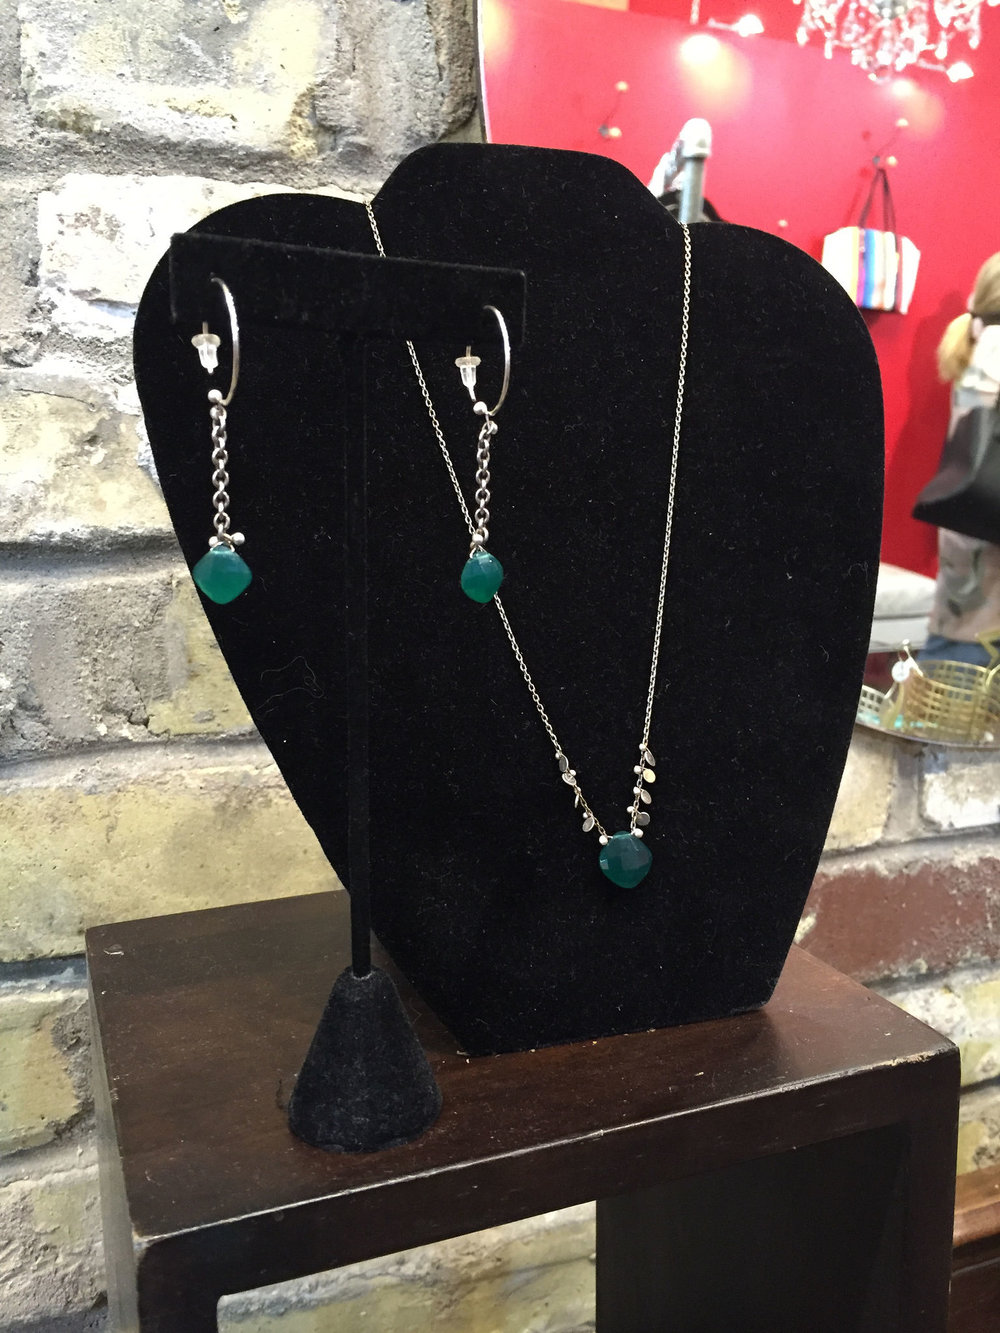 Green onyx necklace, $72; earrings, $48